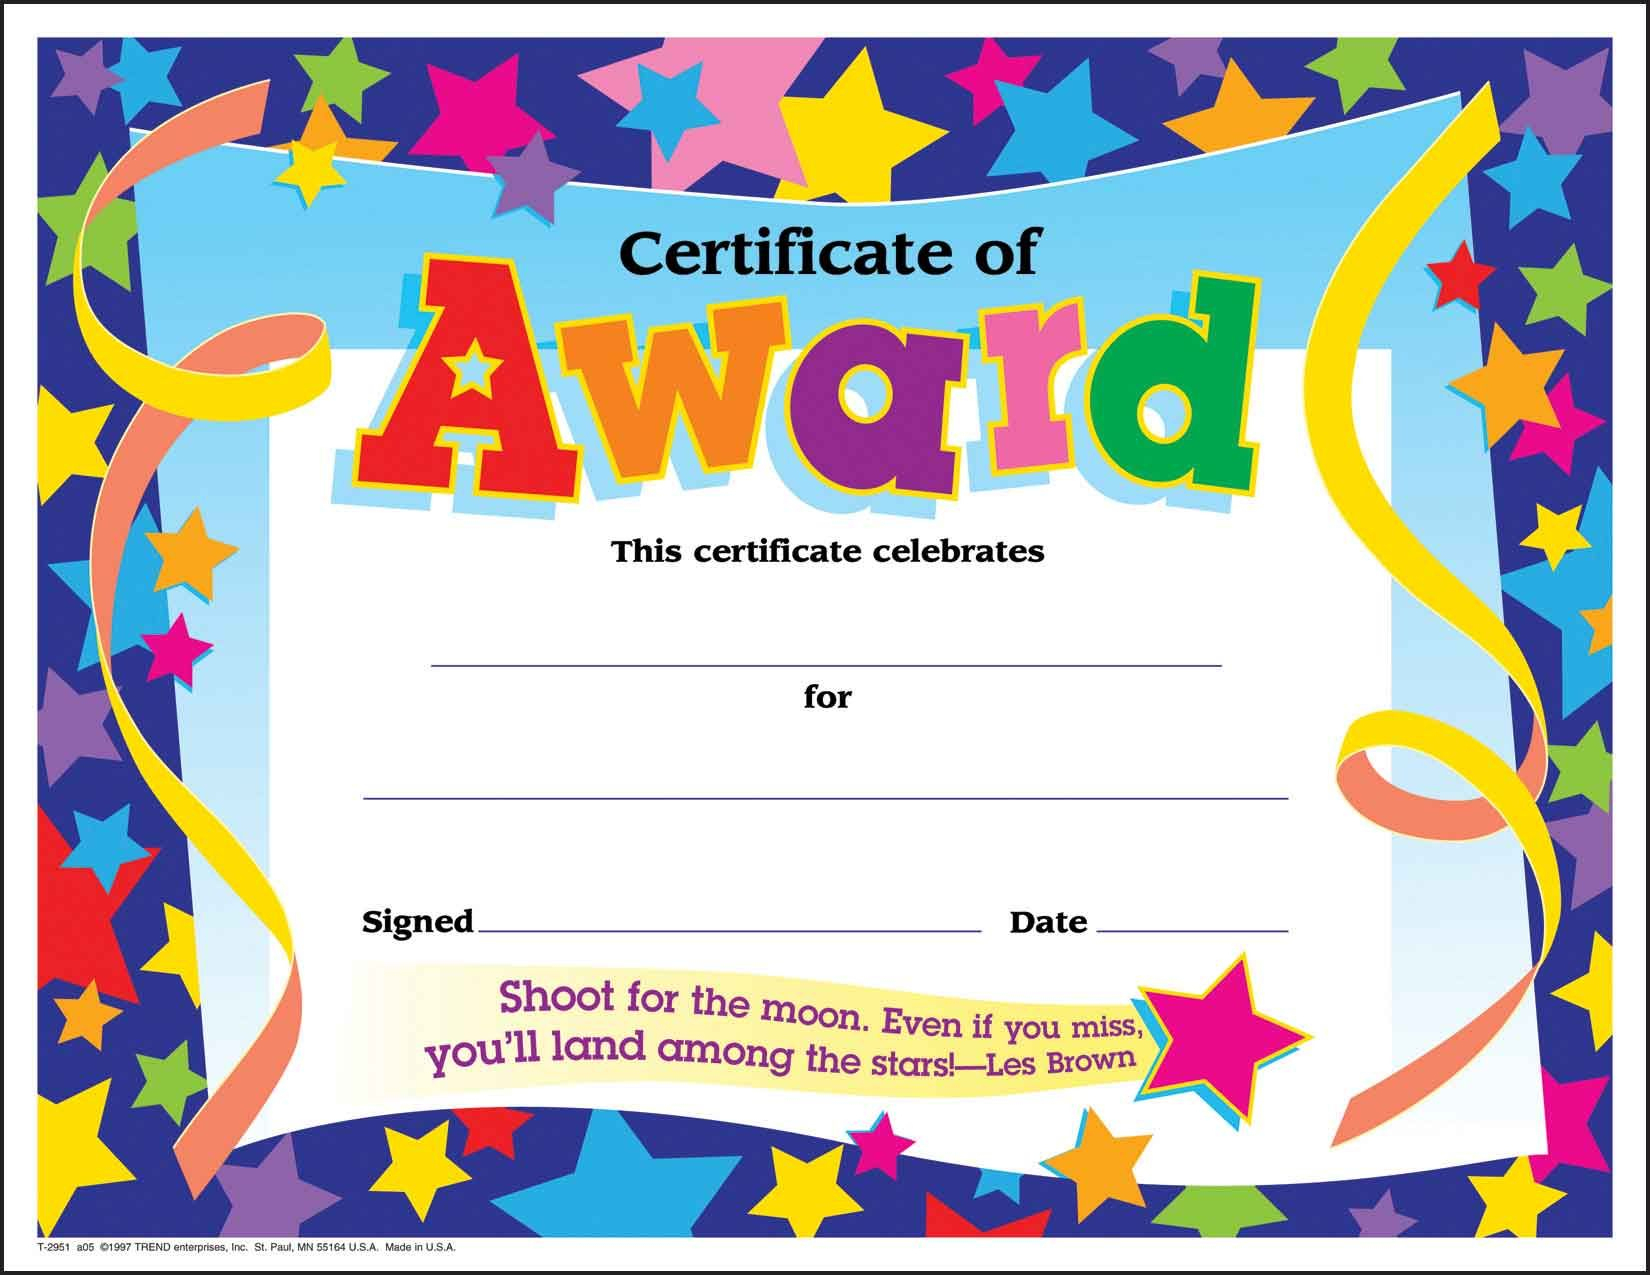 Certificate Template For Kids Free Certificate Templates - Free Printable Certificates